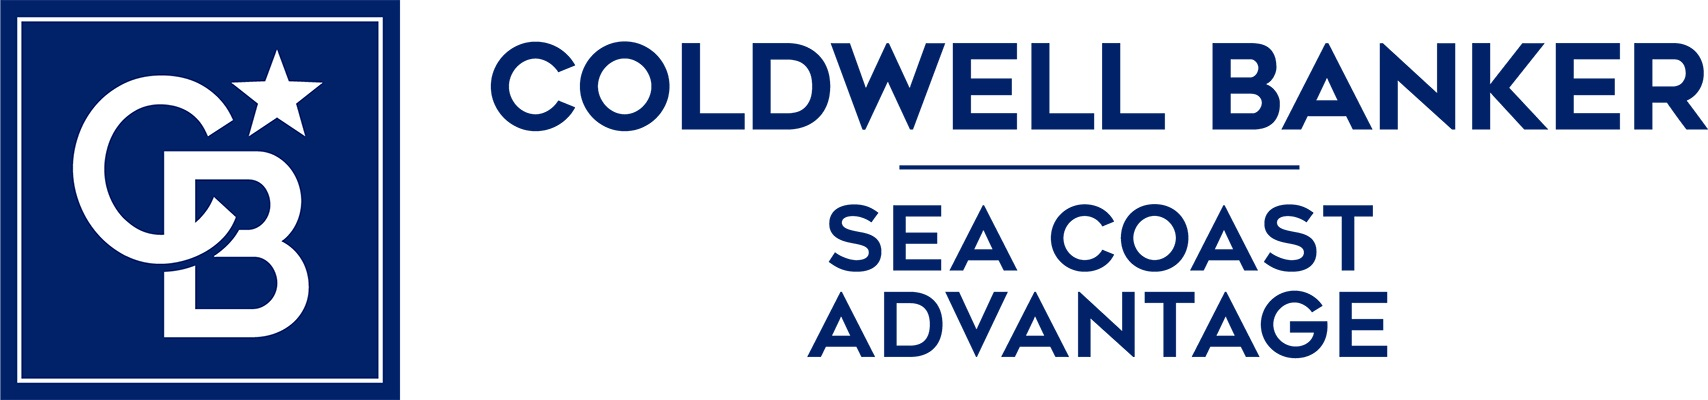 Emily Rideout - Coldwell Banker Sea Coast Advantage Realty Logo